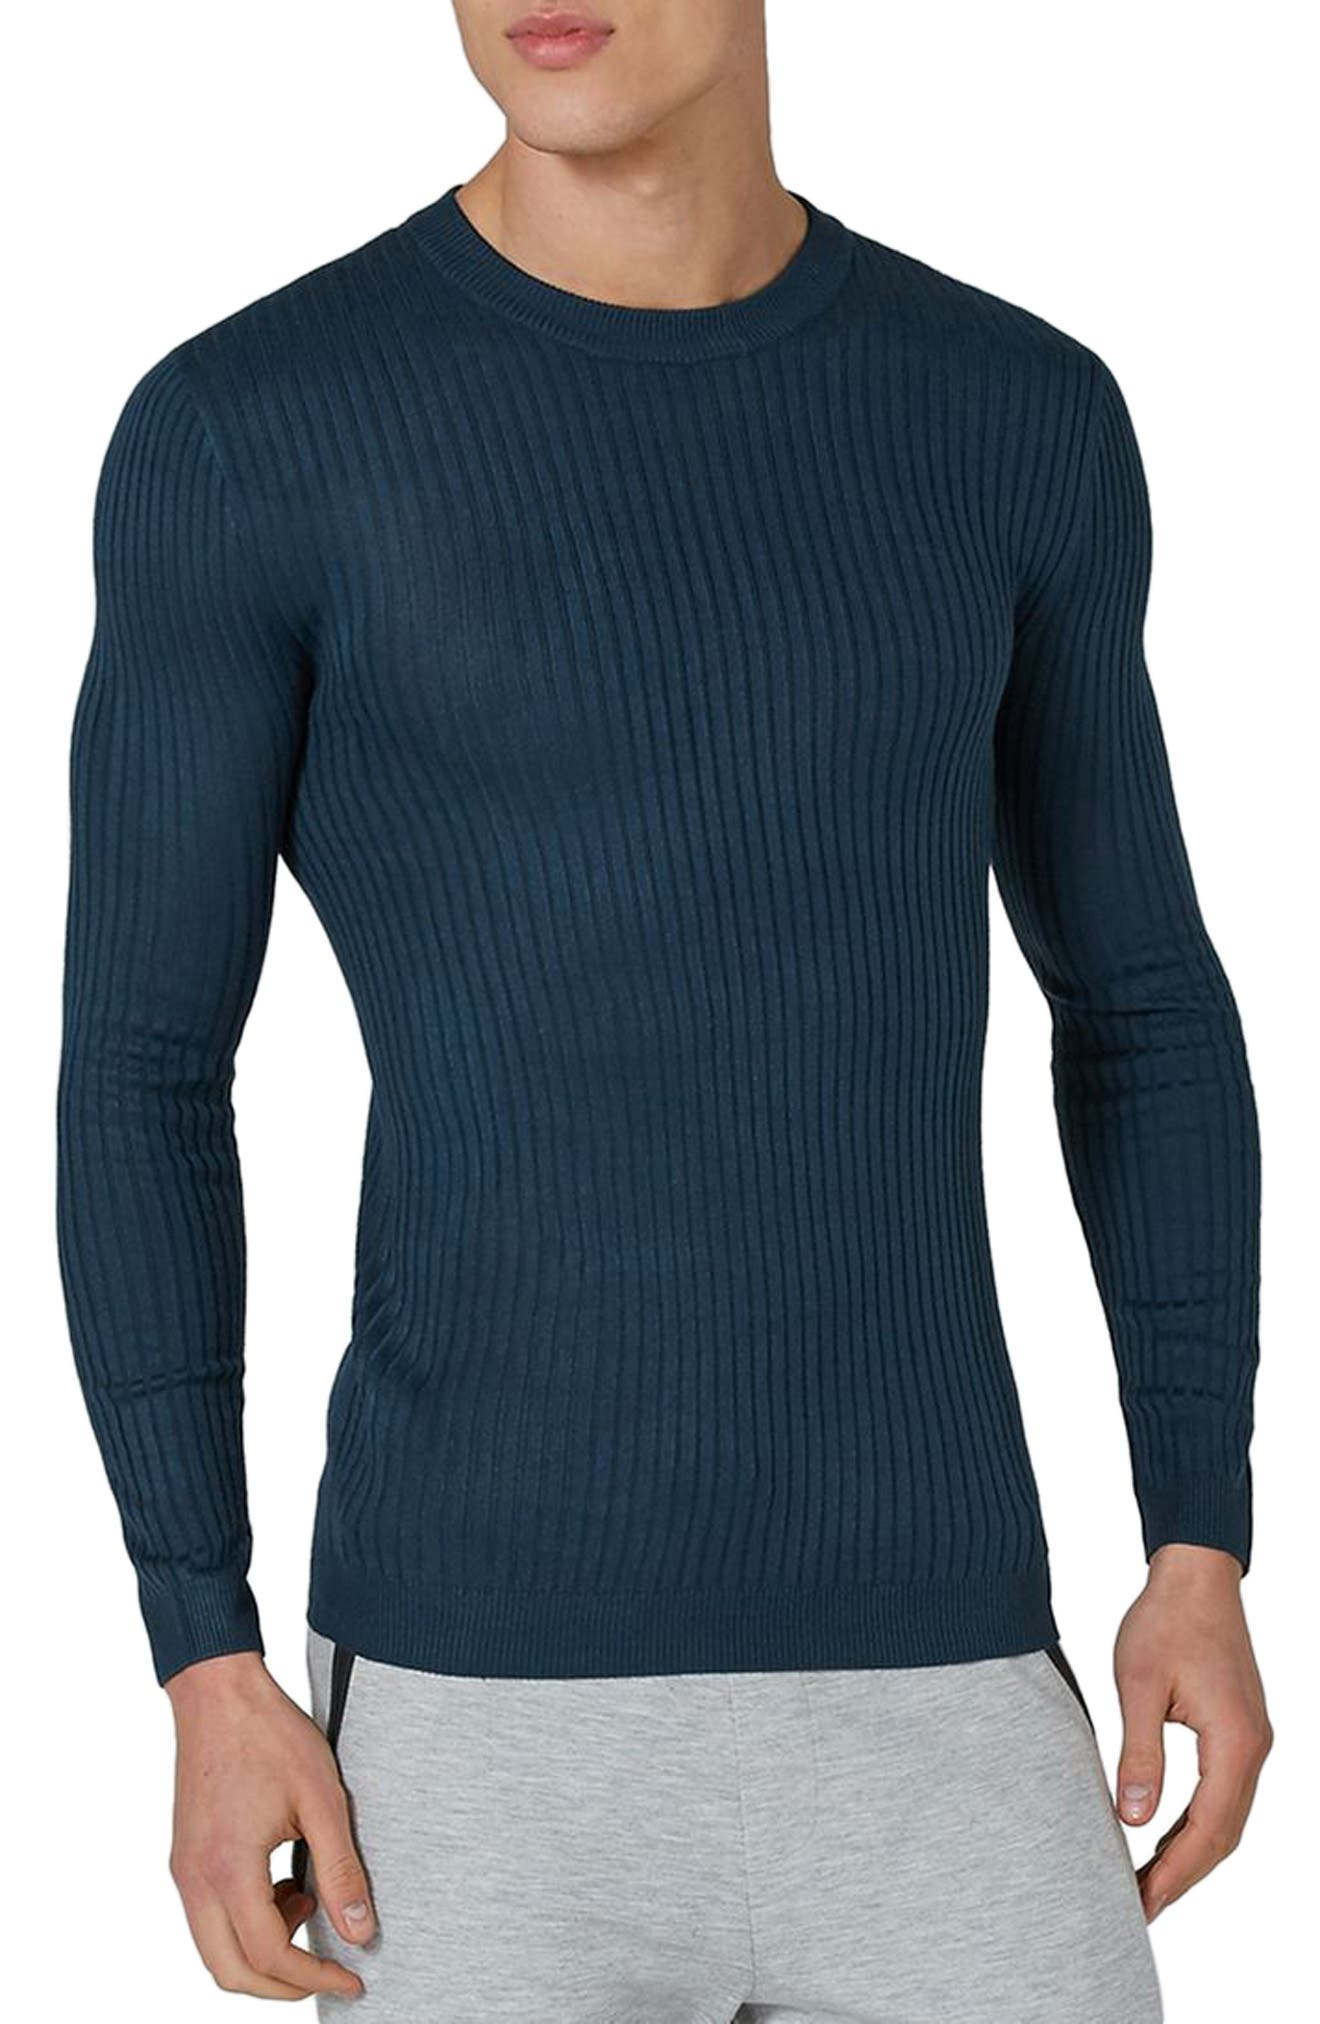 Alternate Image 1 Selected - Topman Ribbed Muscle Fit Sweater